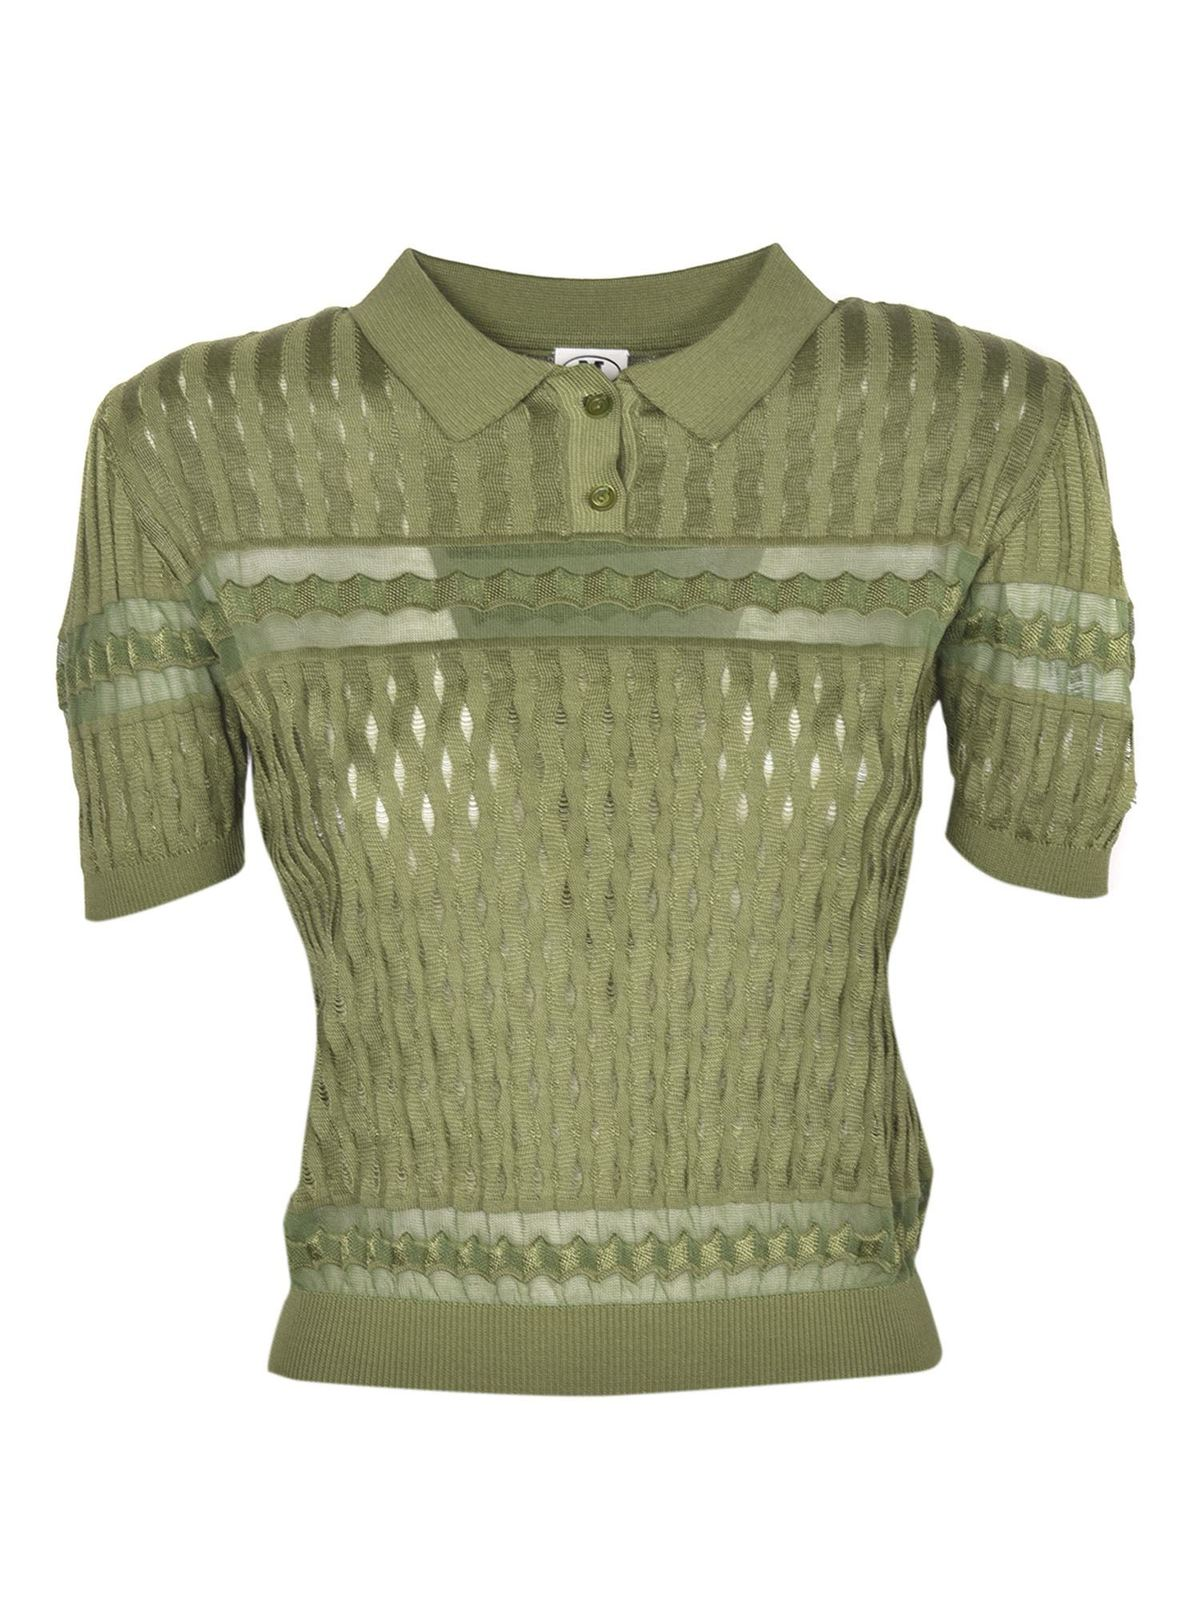 Missoni MULTI-STITCHED POLO SHIRT IN GREEN